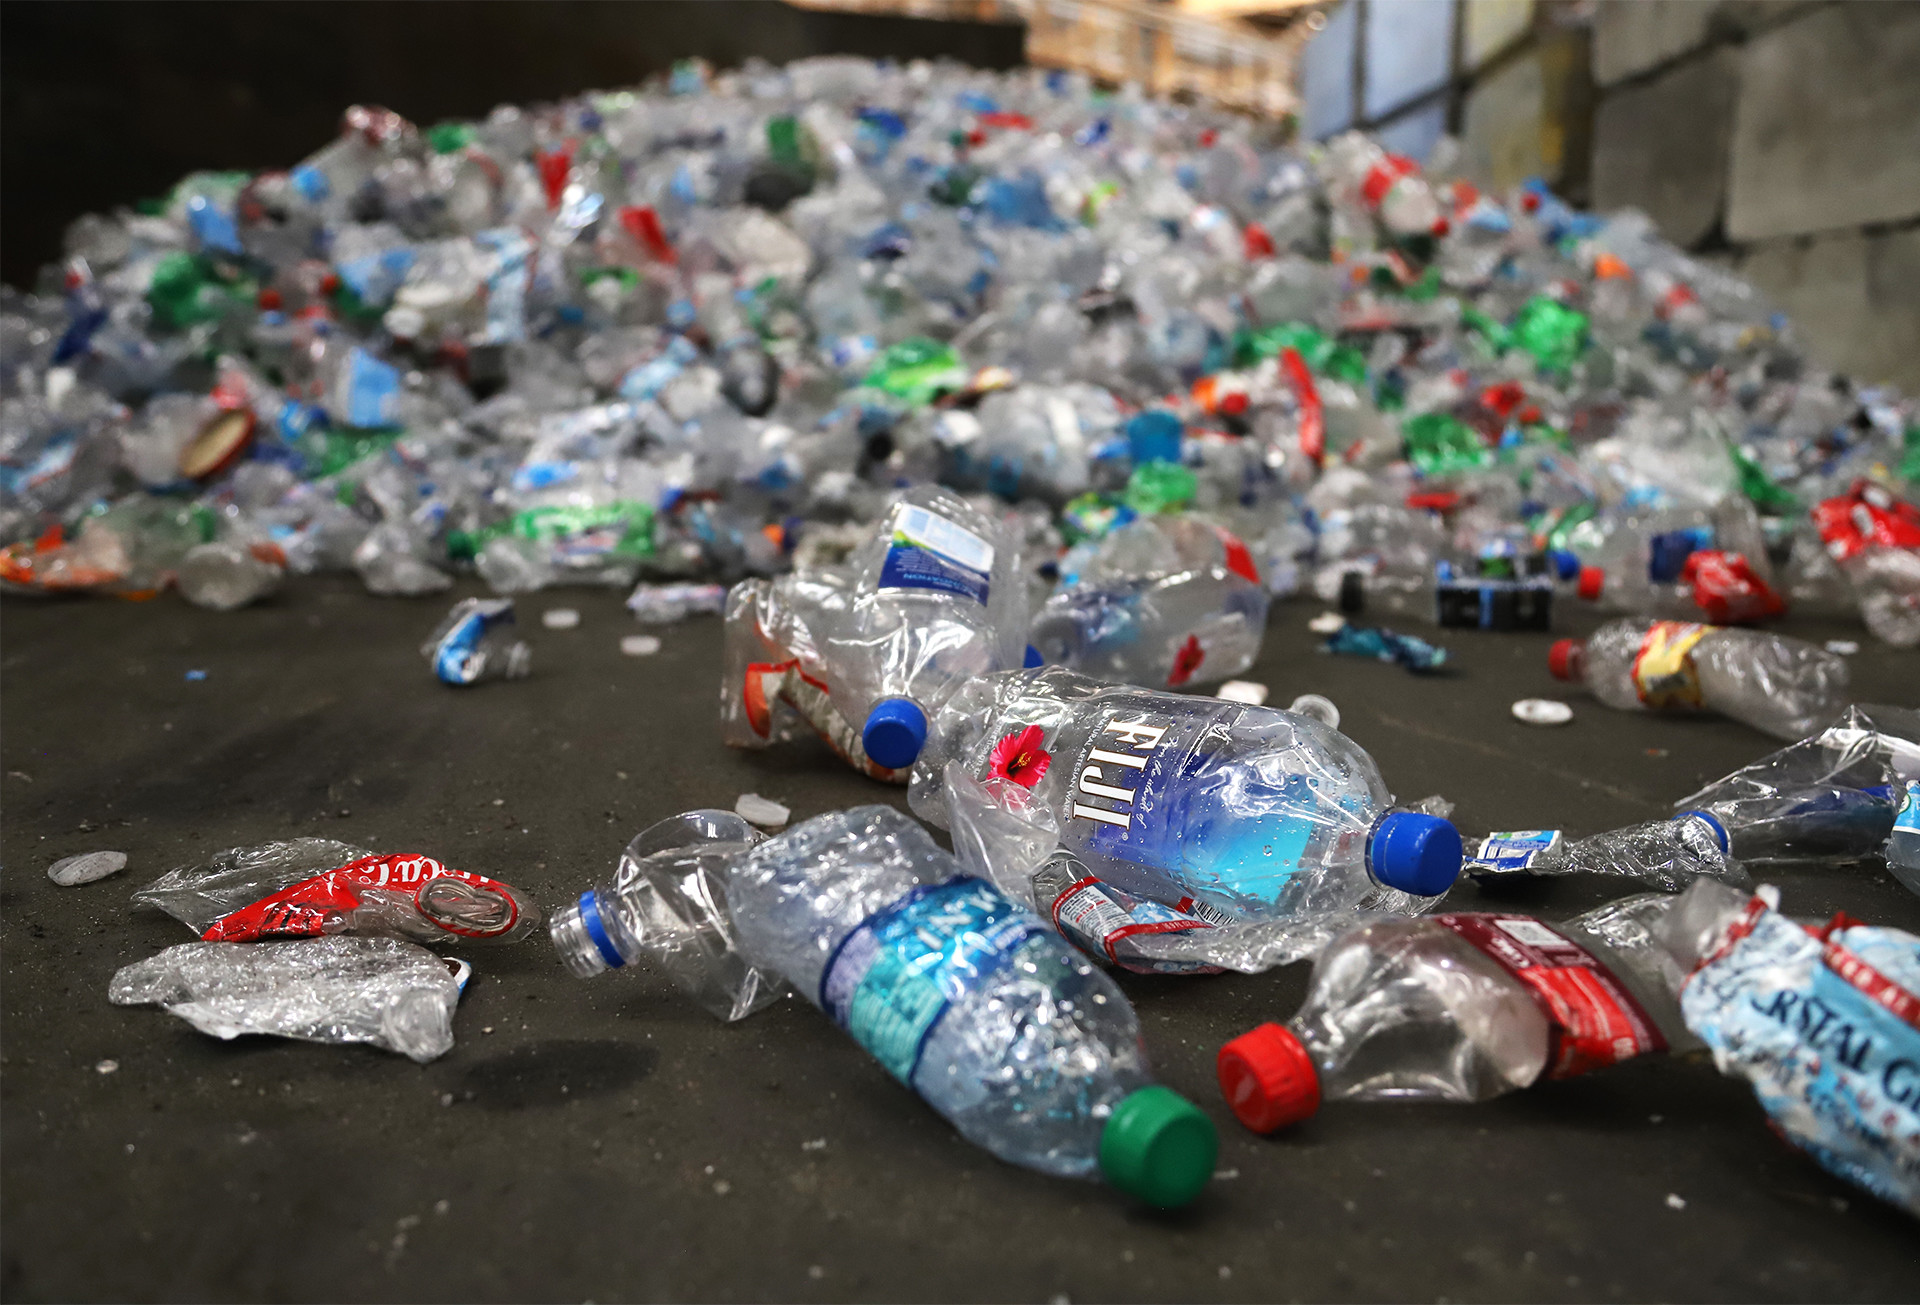 California Governor Vetoes Ambitious Bottle Recycling Bill, Citing 'Burdensome' Amendments